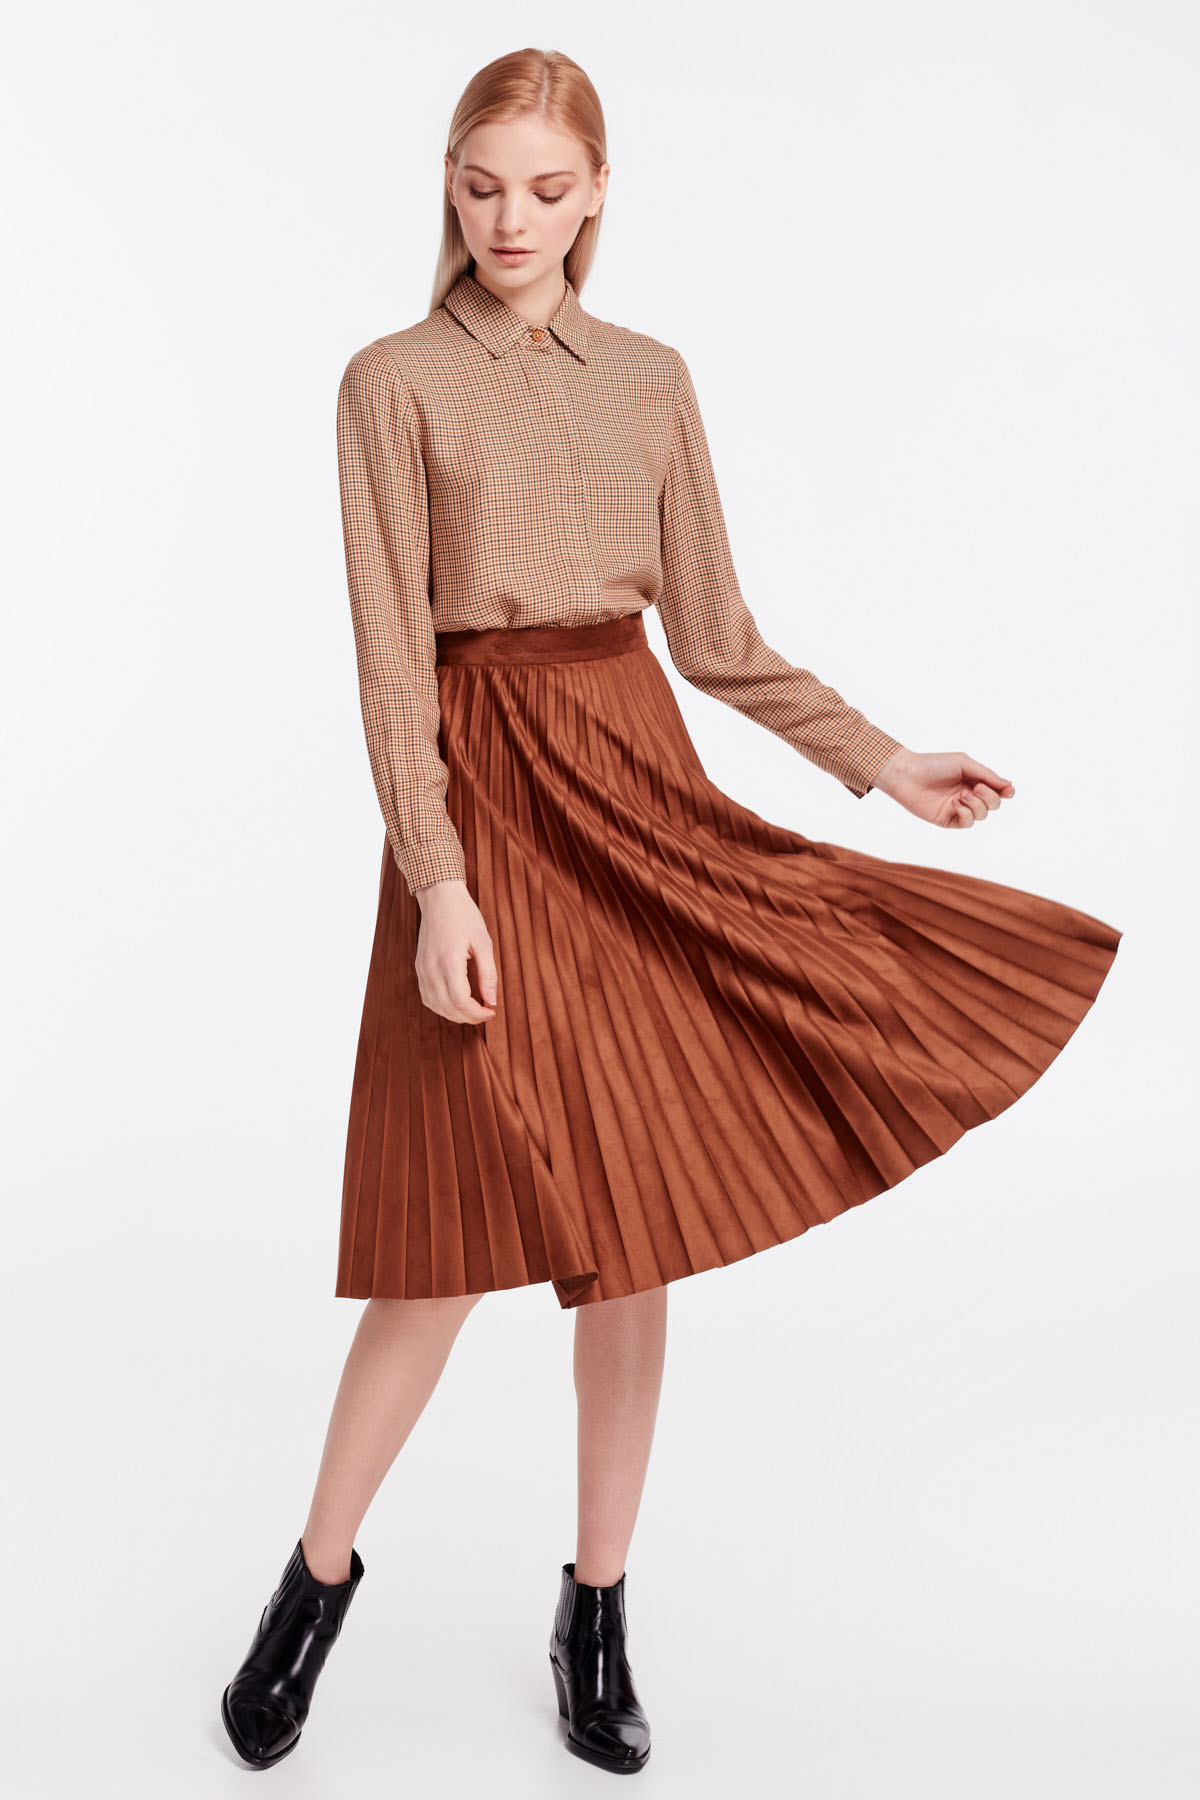 5e46473ce3 Brown suede pleated skirt photo 2 - MustHave online store